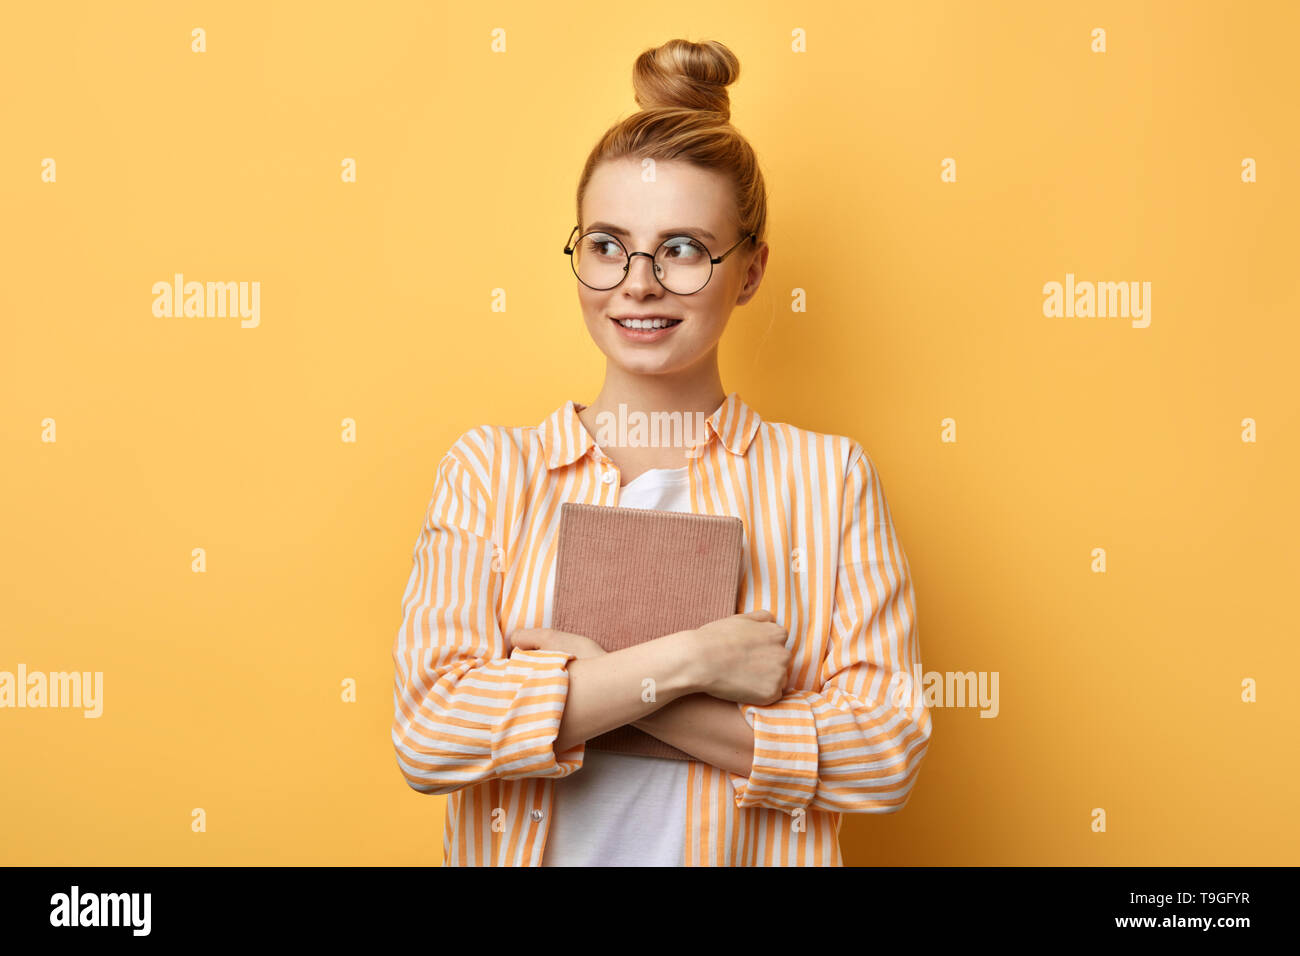 Happy young beautiful woman with hairbun standing and holding tablet over yellow background and looking aside . education concept. copy space - Stock Image